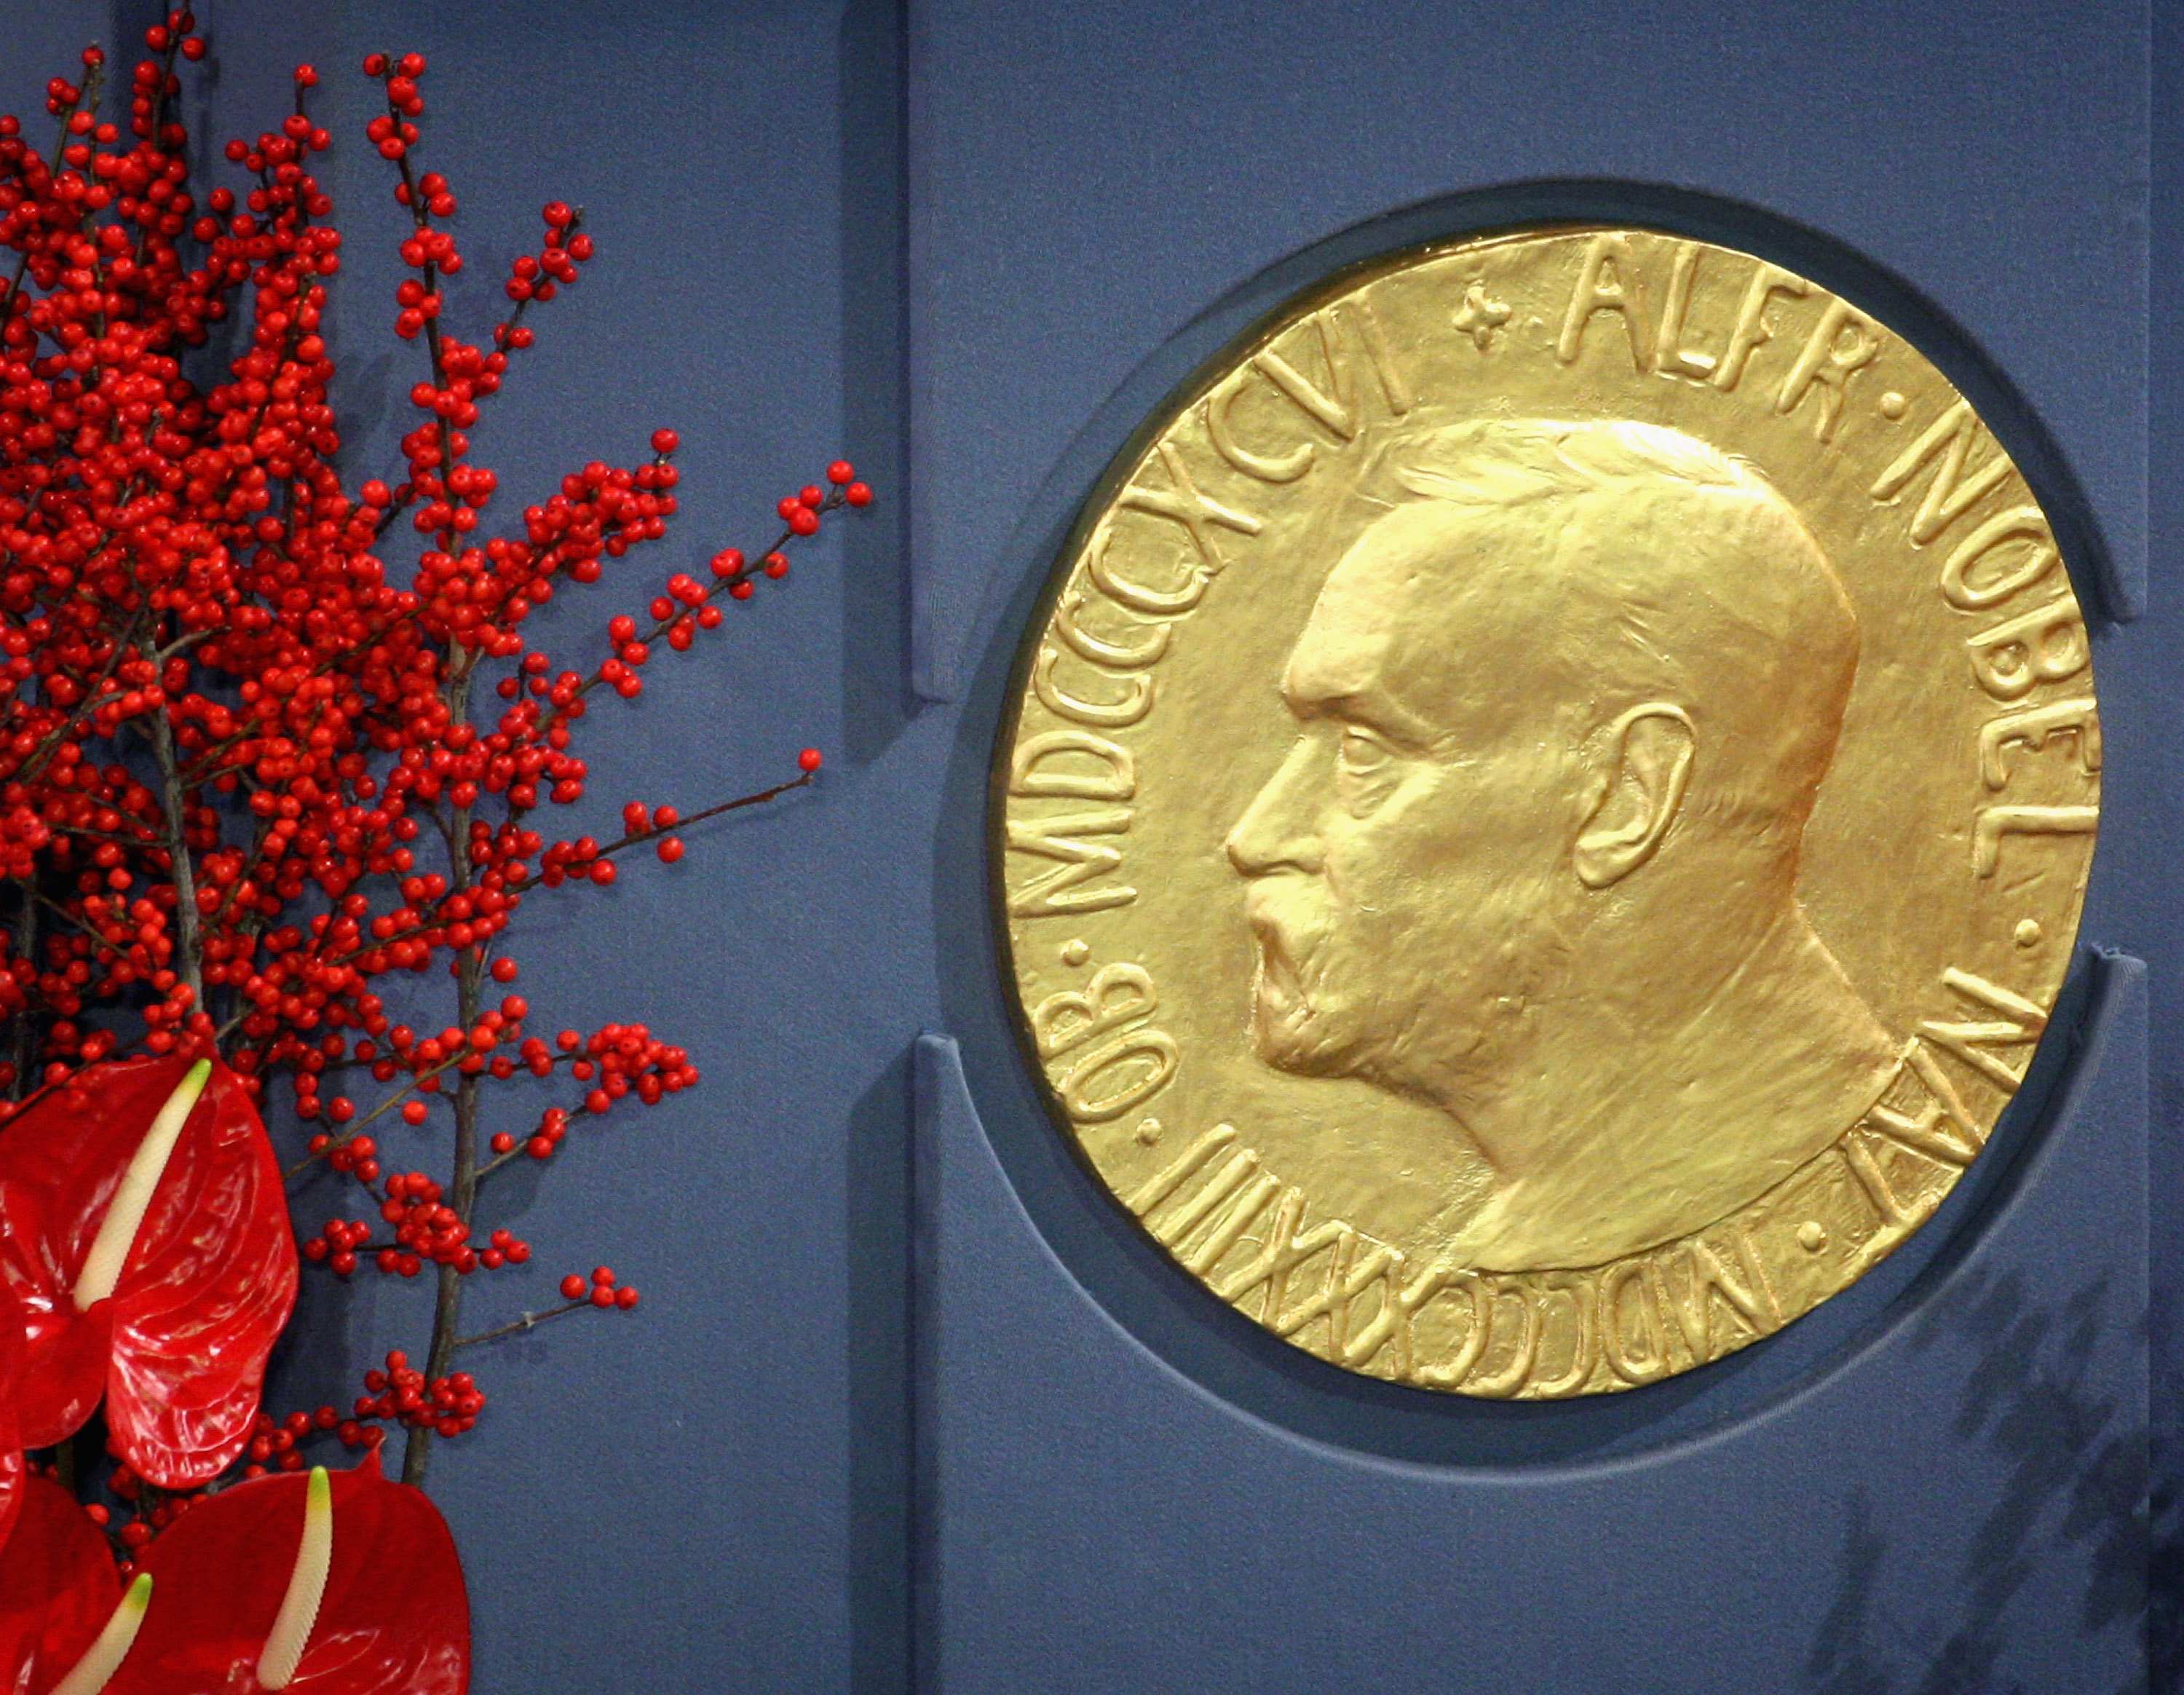 A plaque depicting Alfred Nobel at the Nobel Peace Prize Ceremony 2008 in Oslo City Hall on December 10, 2008 in Oslo, Norway.